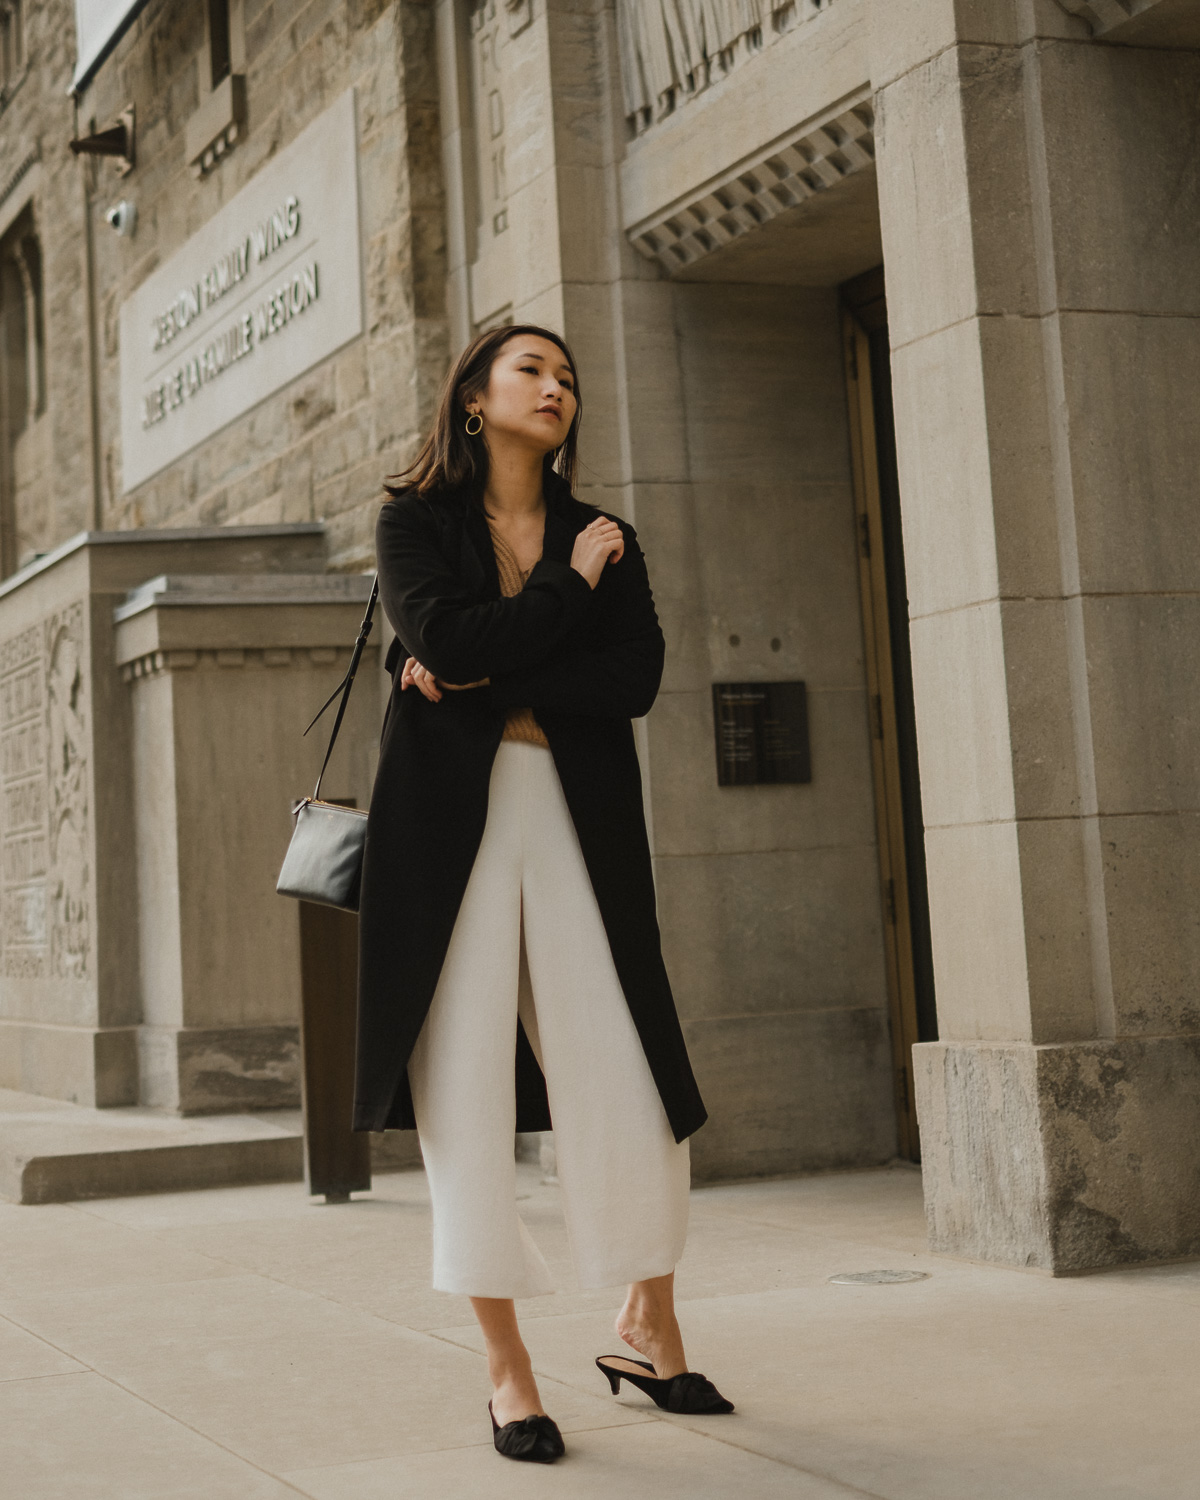 spring-outfit-white-trousers.jpg